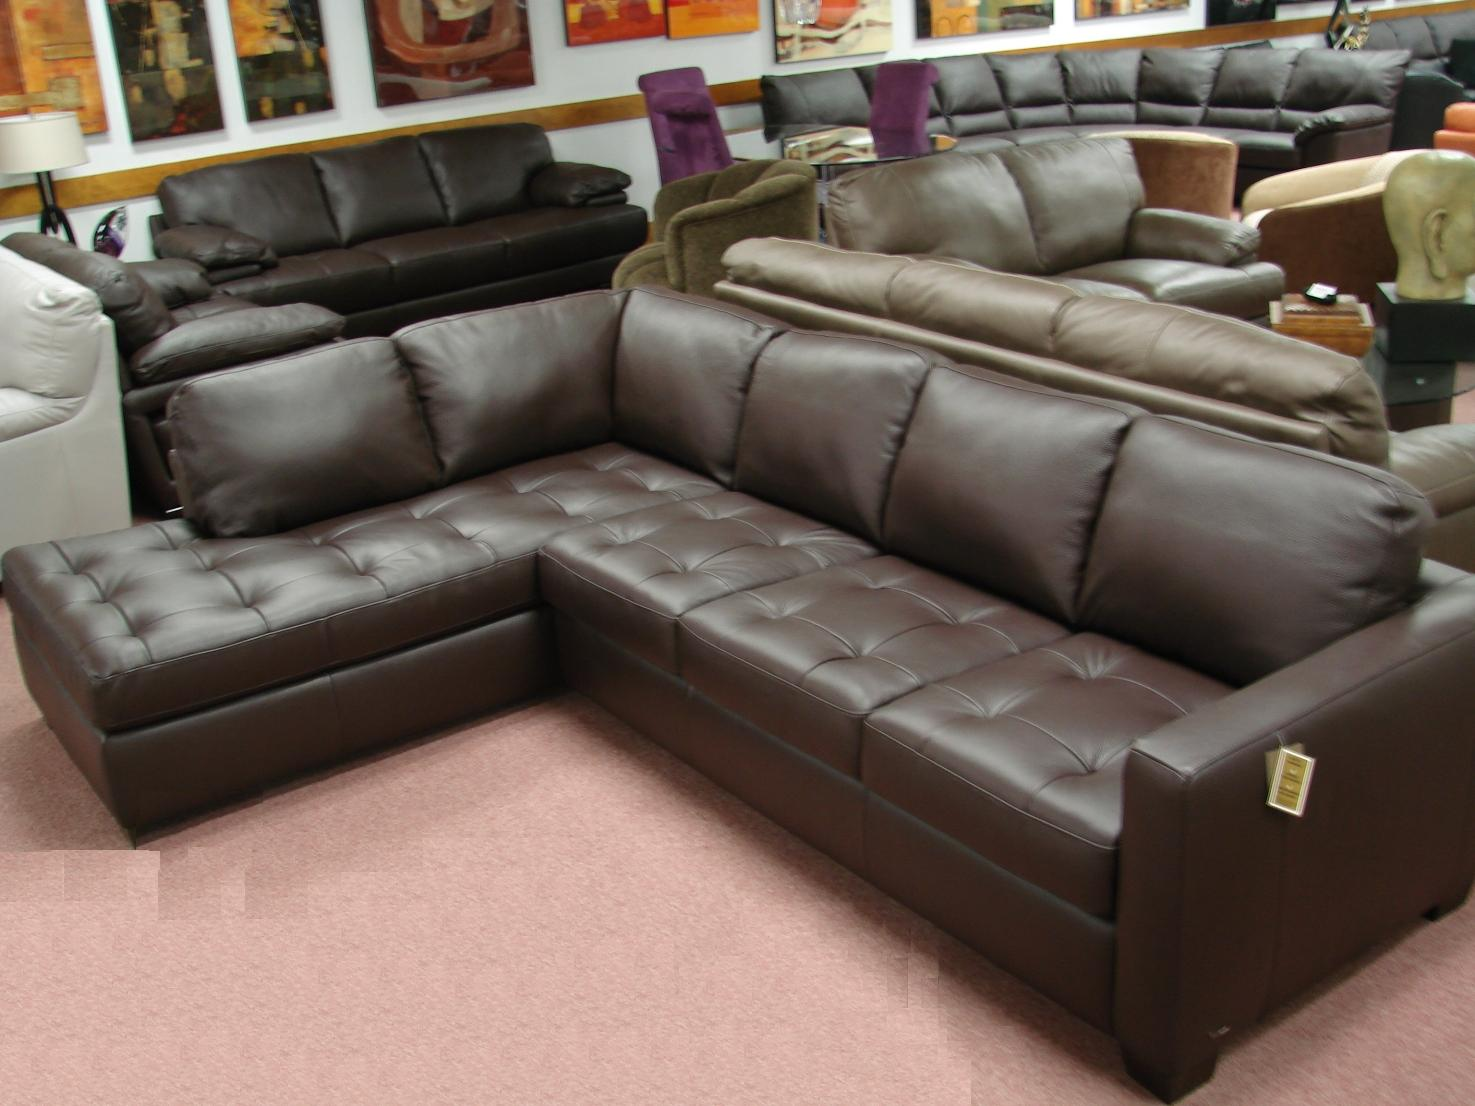 Sectional Sofa Sale Ivory Slipcover Natuzzi Leather Sofas And Sectionals By Interior Concepts